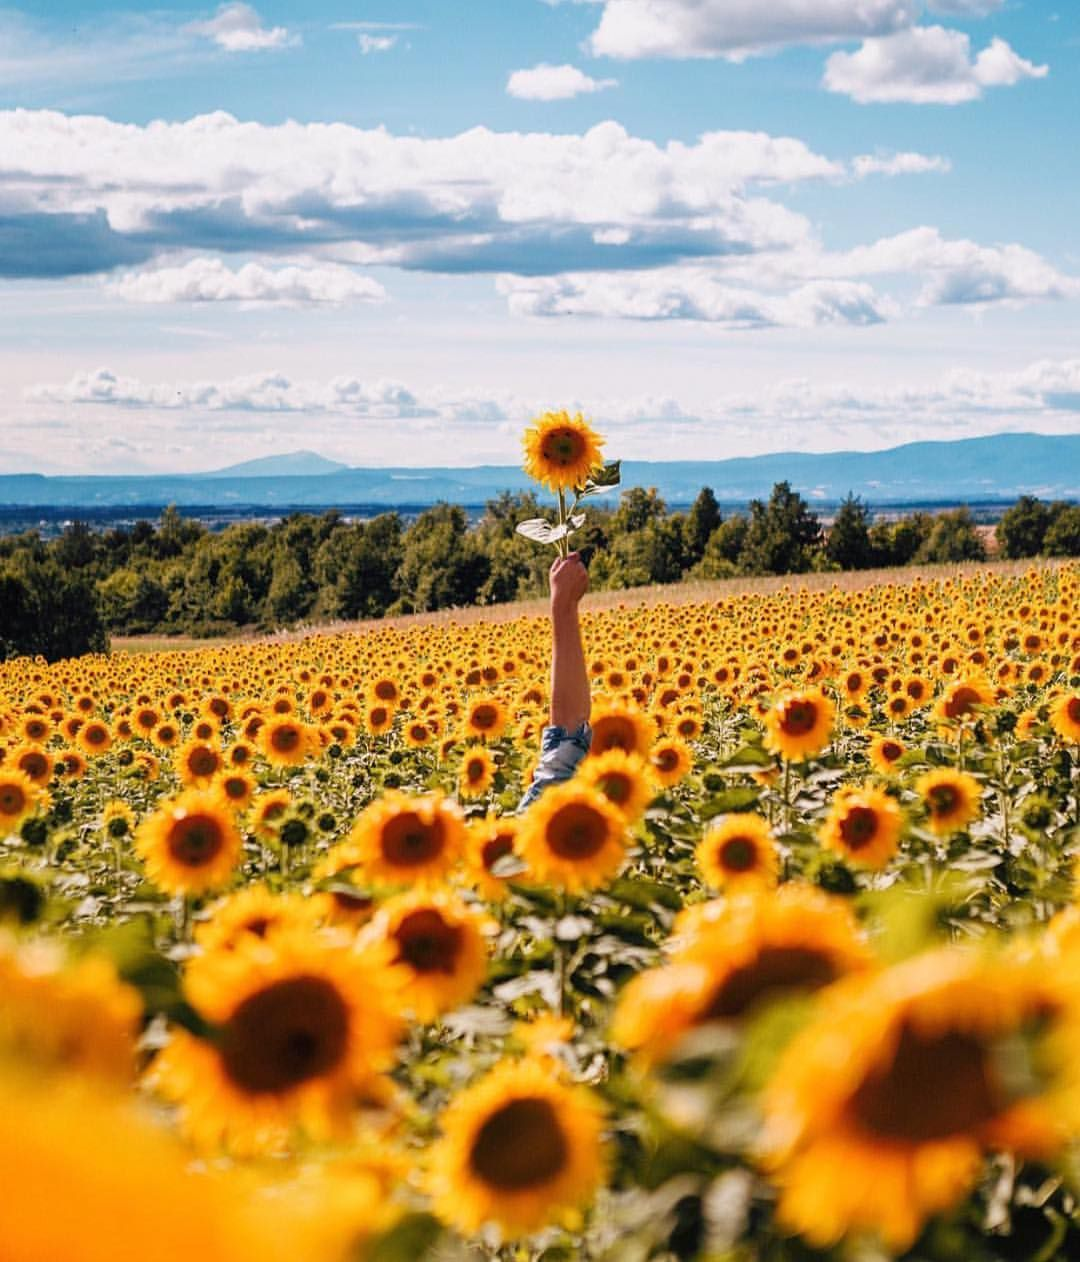 29 9k Likes 277 Comments Ootd Magazine Ootdmagazine On Instagram Tag Someone You W Sunflower Pictures Sunflower Photography Sunflower Field Photography